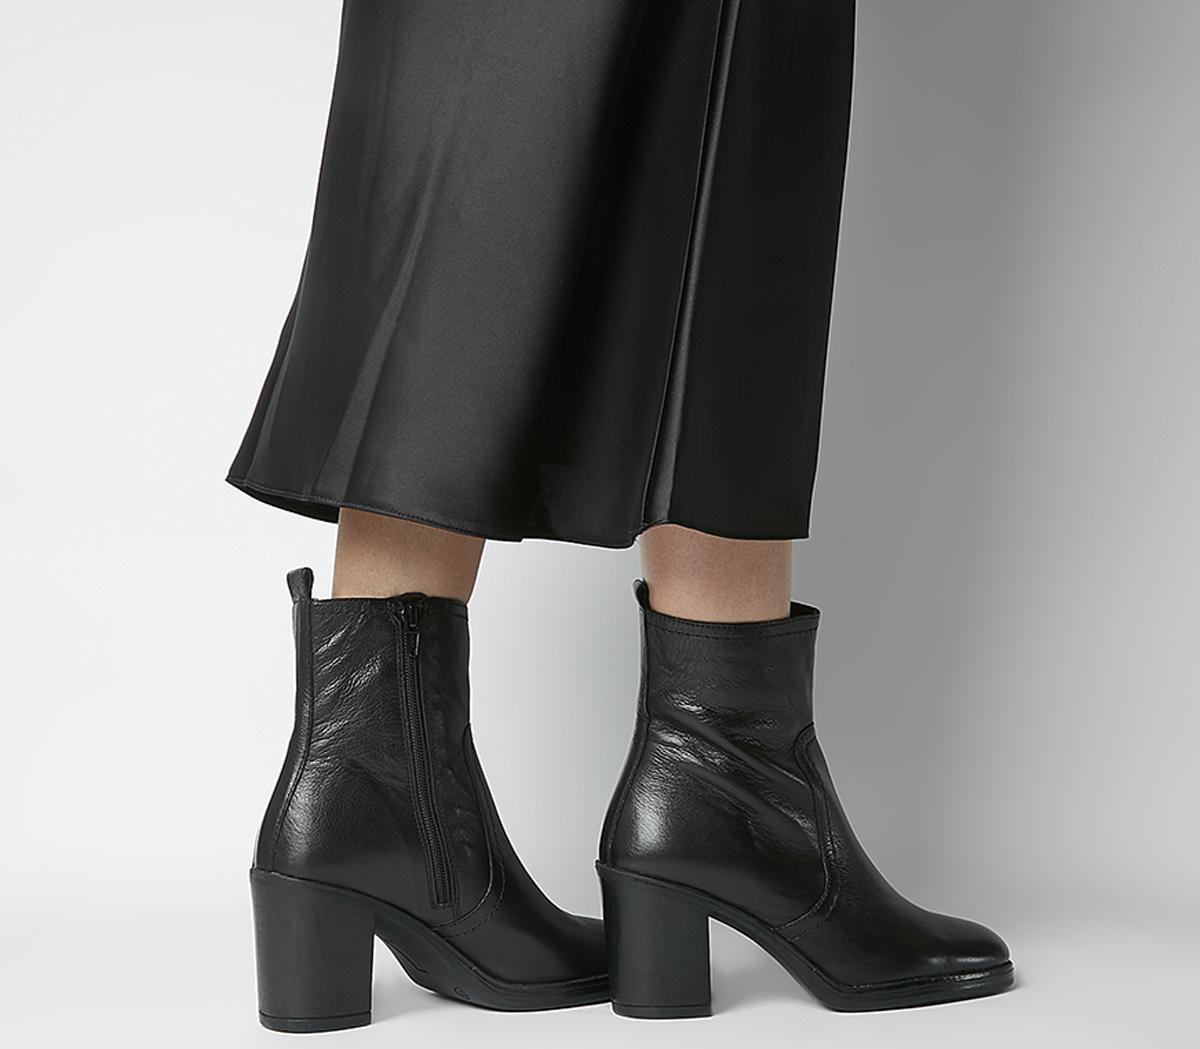 Office Away Casual Heeled Boots Black